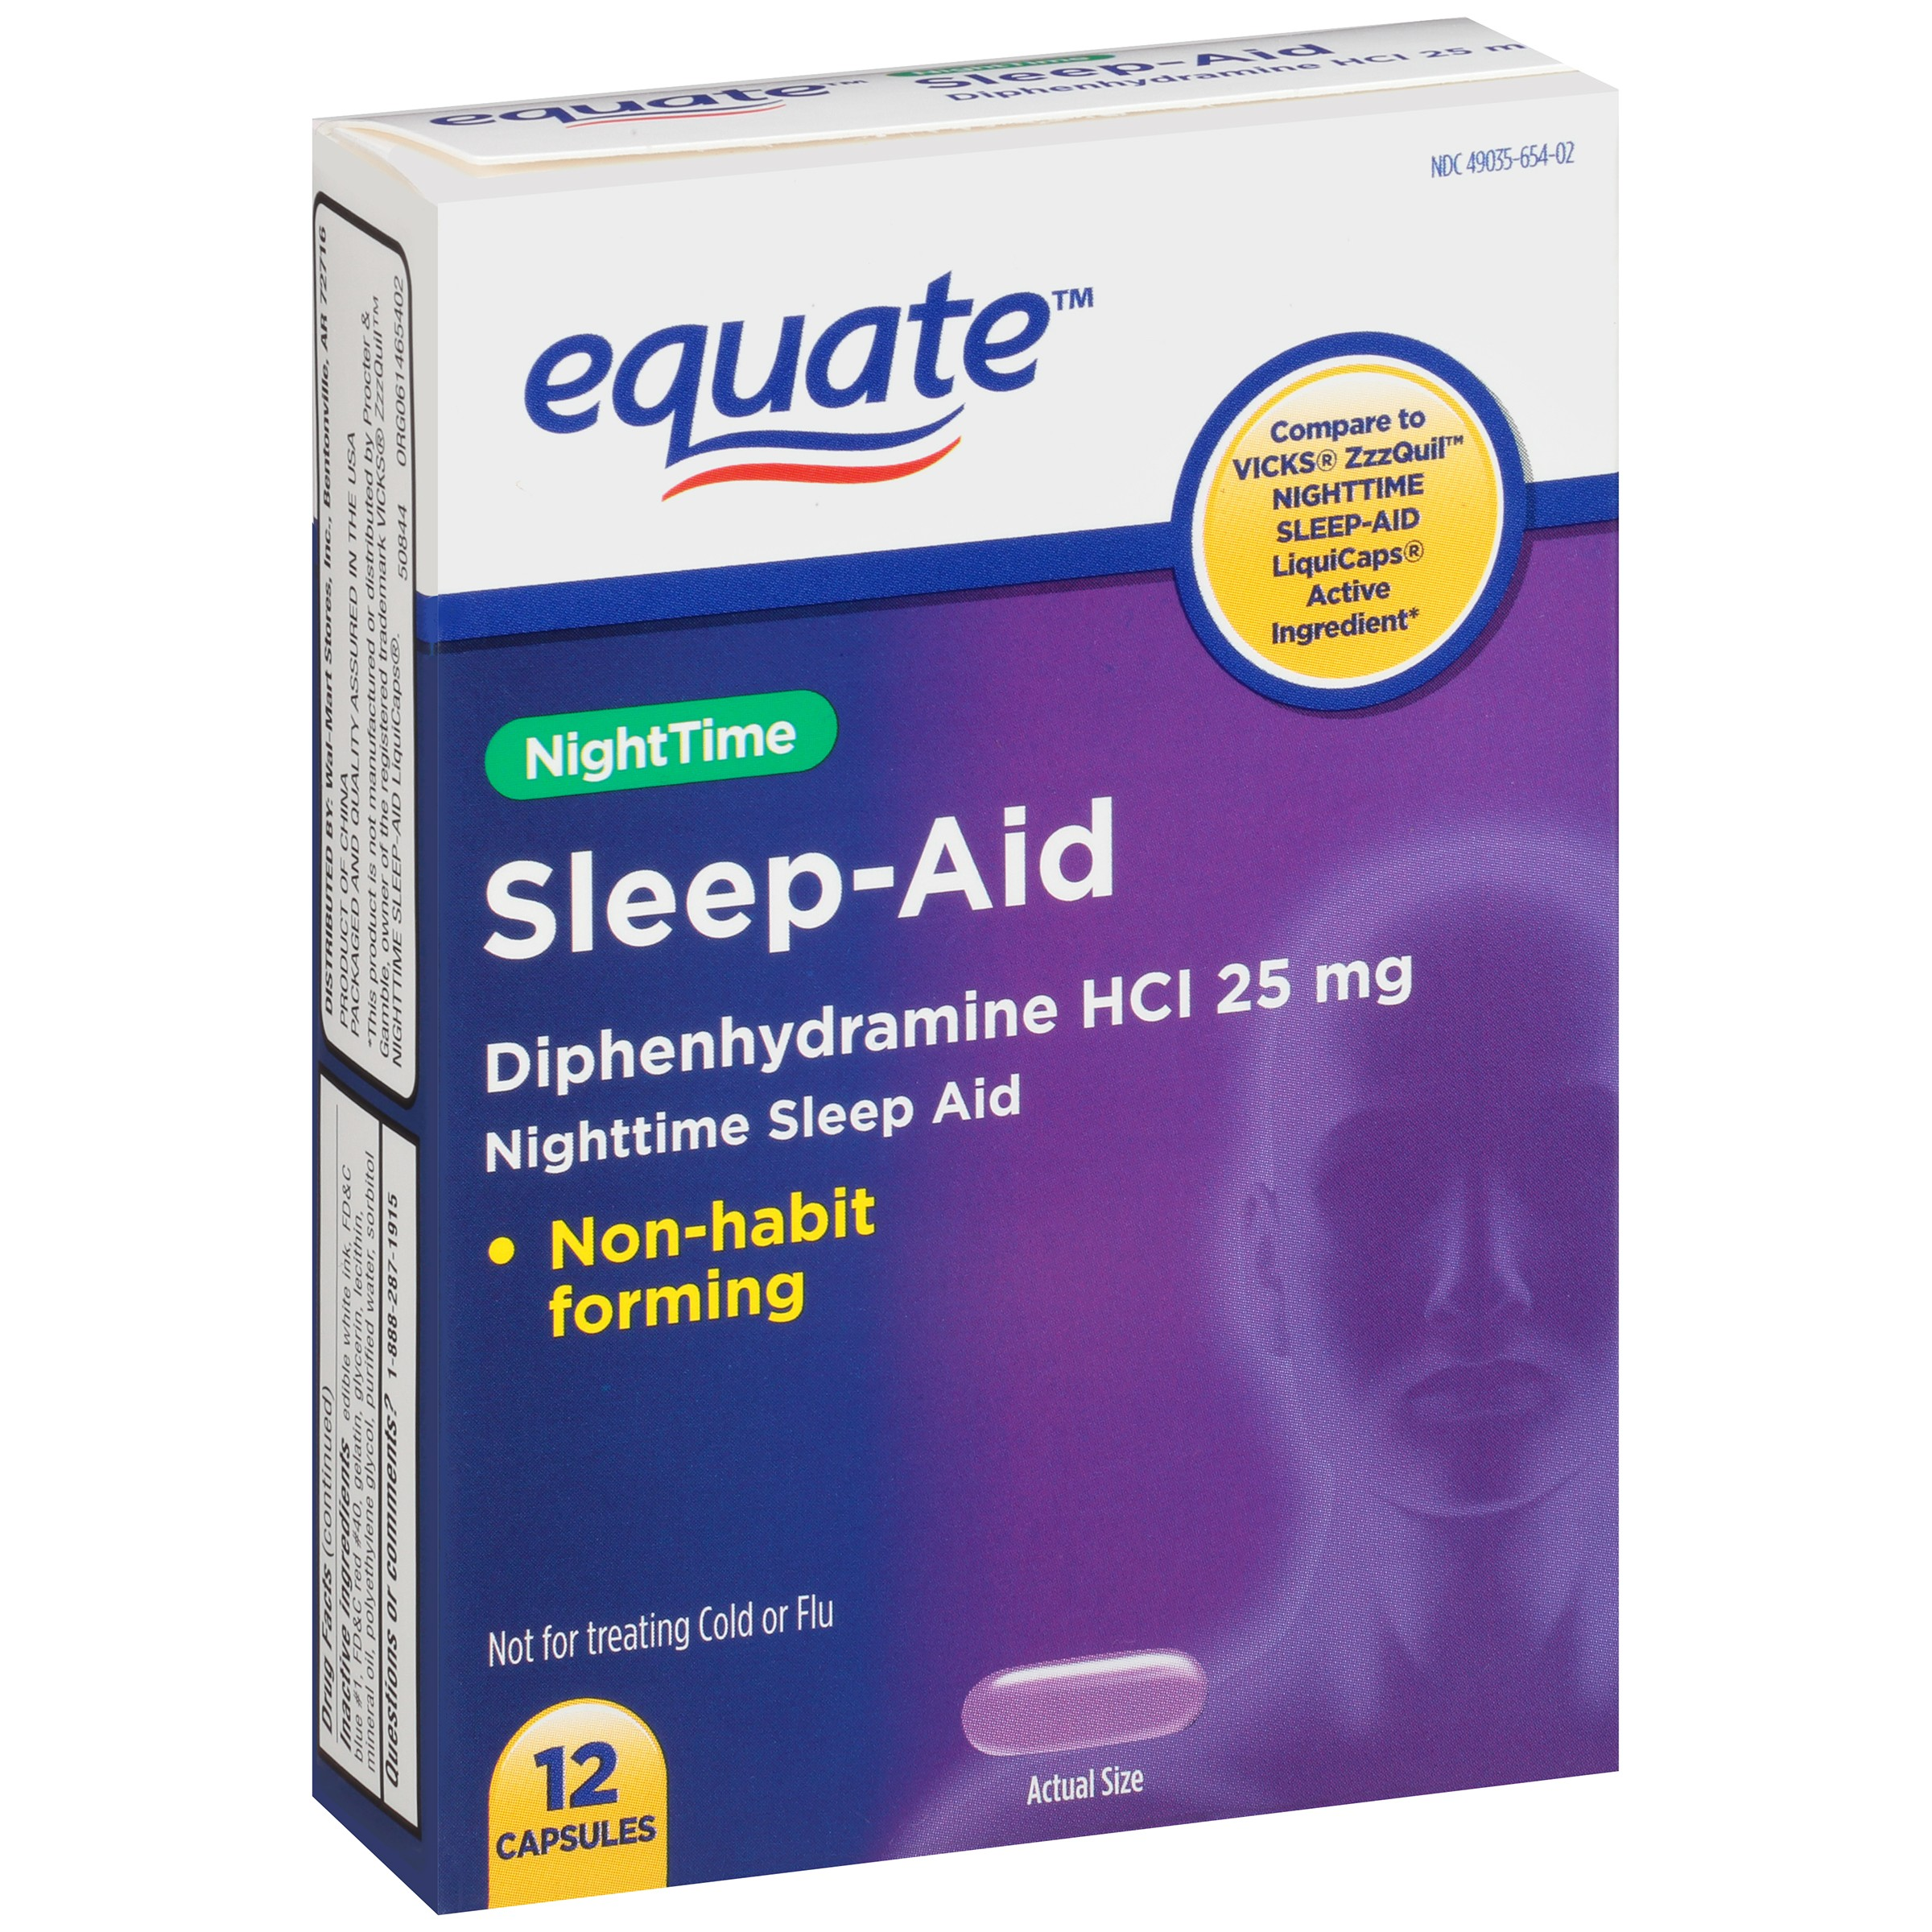 Equate NightTime Sleep-Aid Diphenhydramine Capsules, 25 mg, 12 Ct